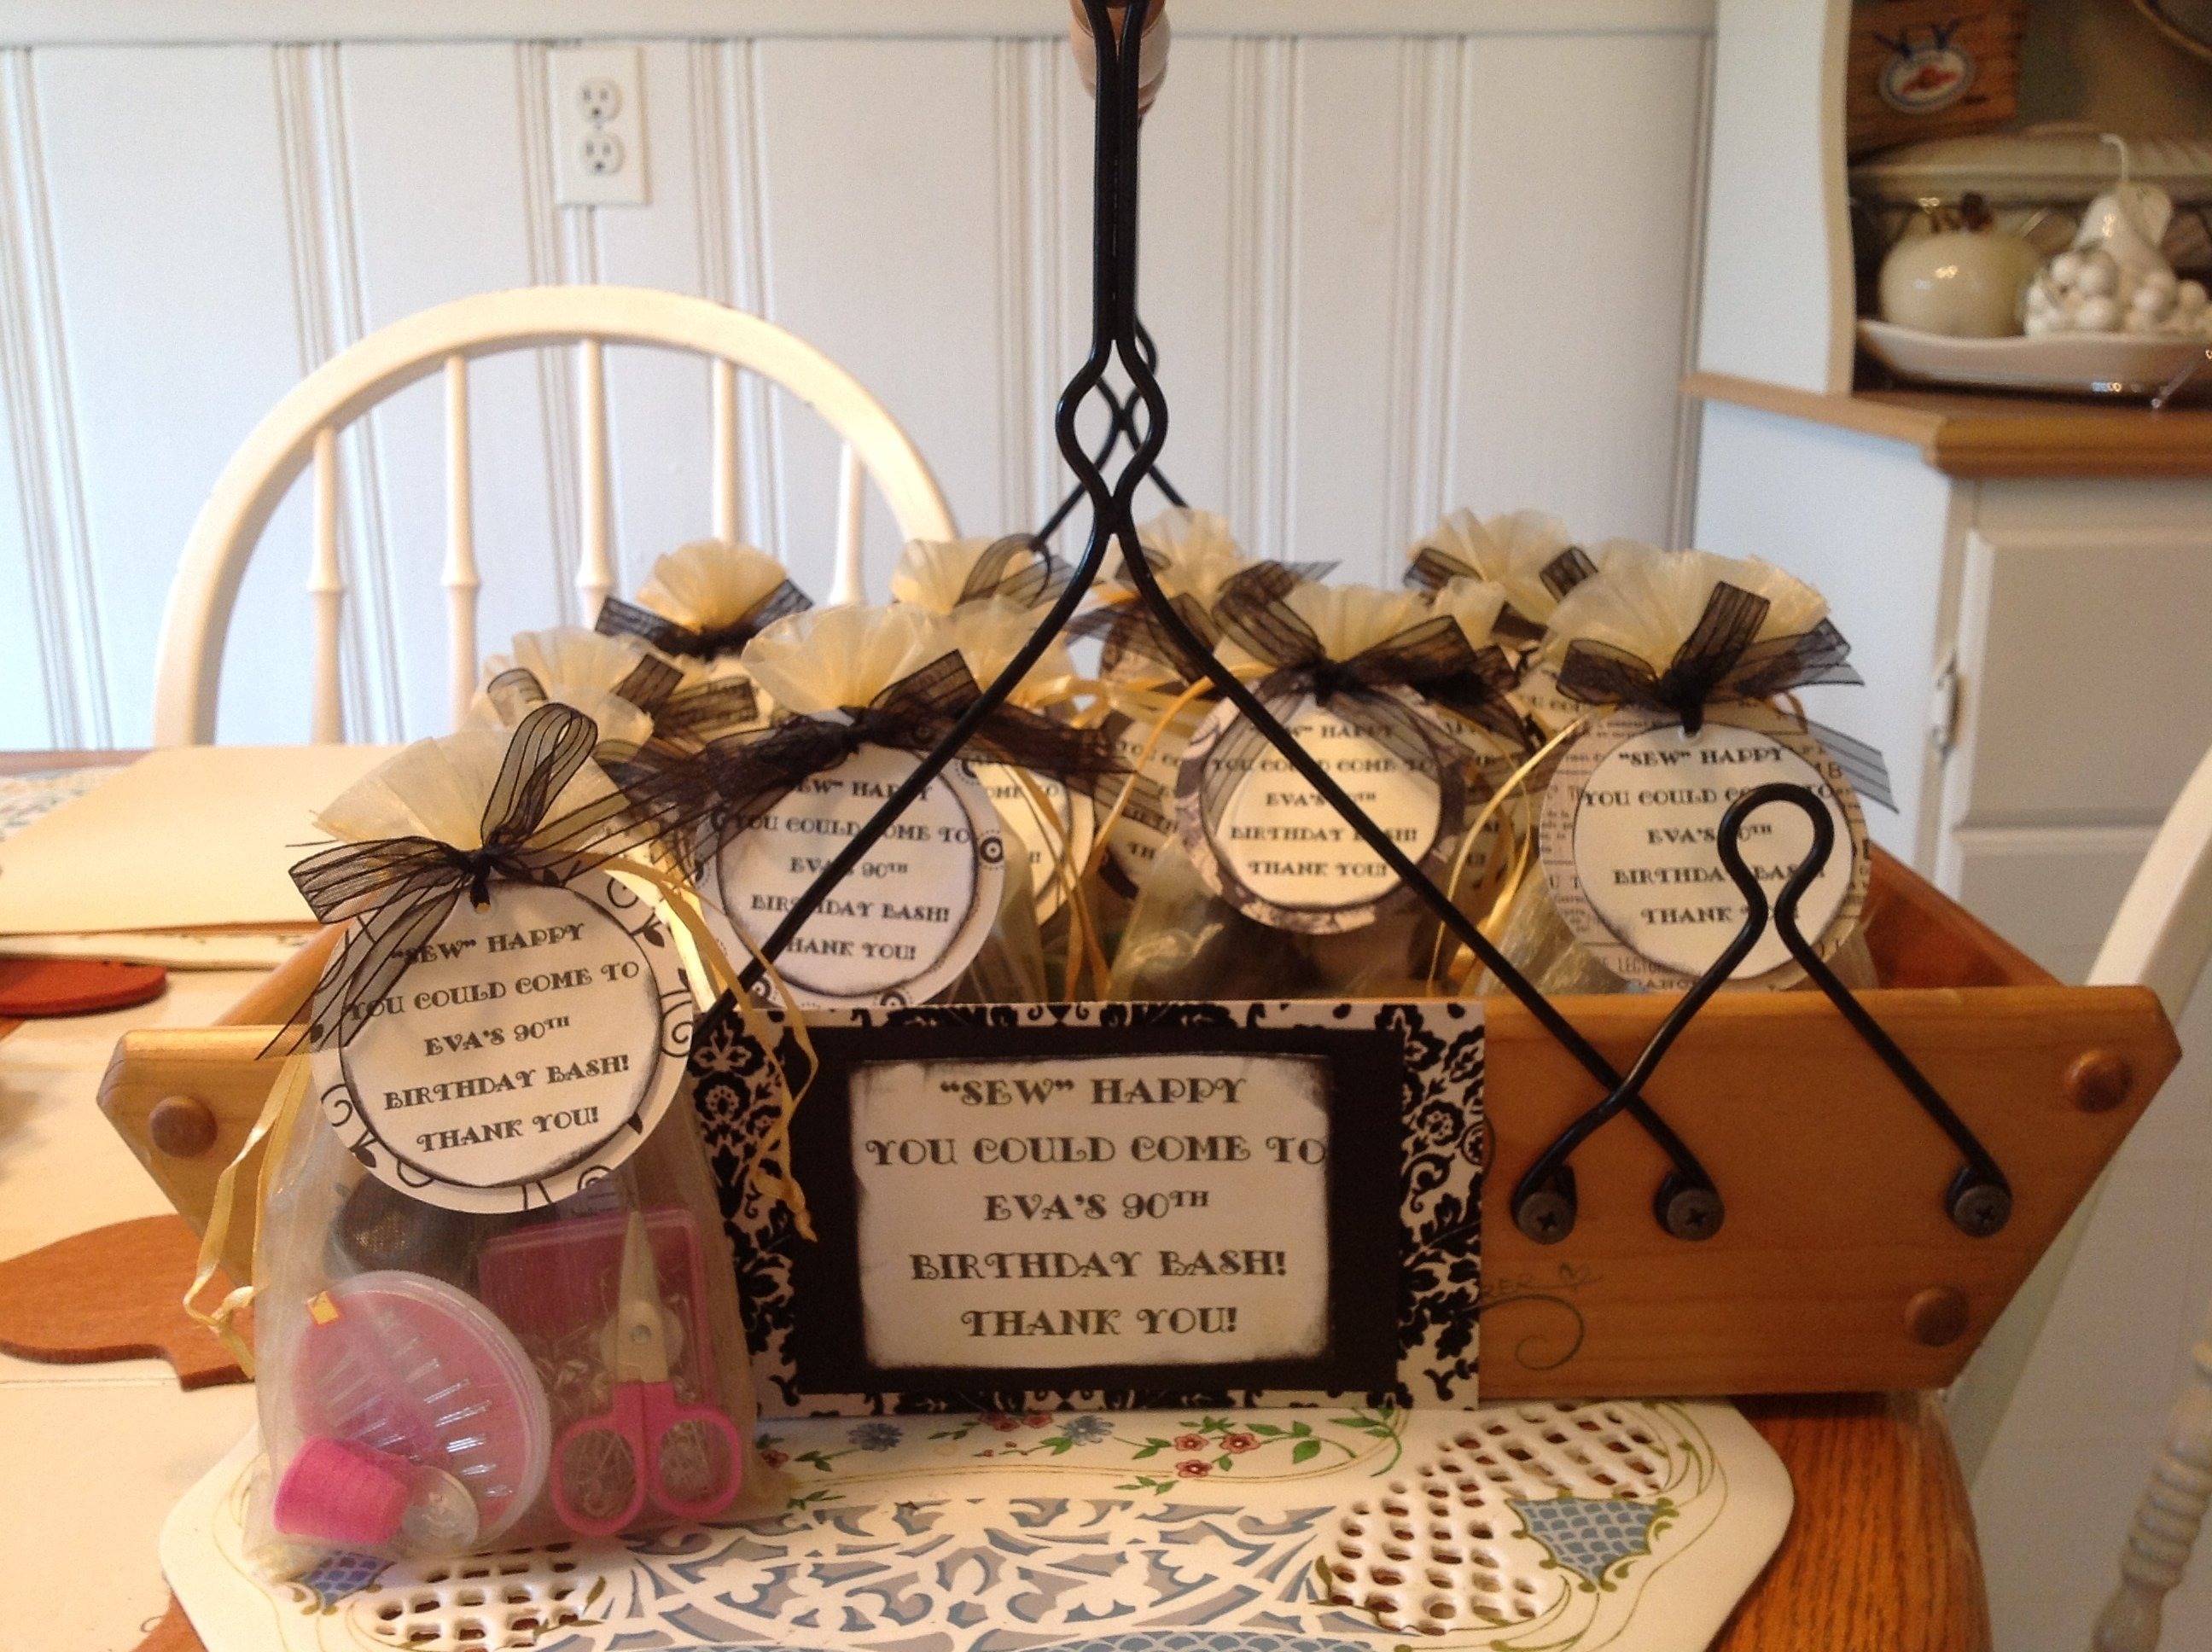 10 Gorgeous Ideas For A 90Th Birthday Party Mini Sewing Kits As Favor